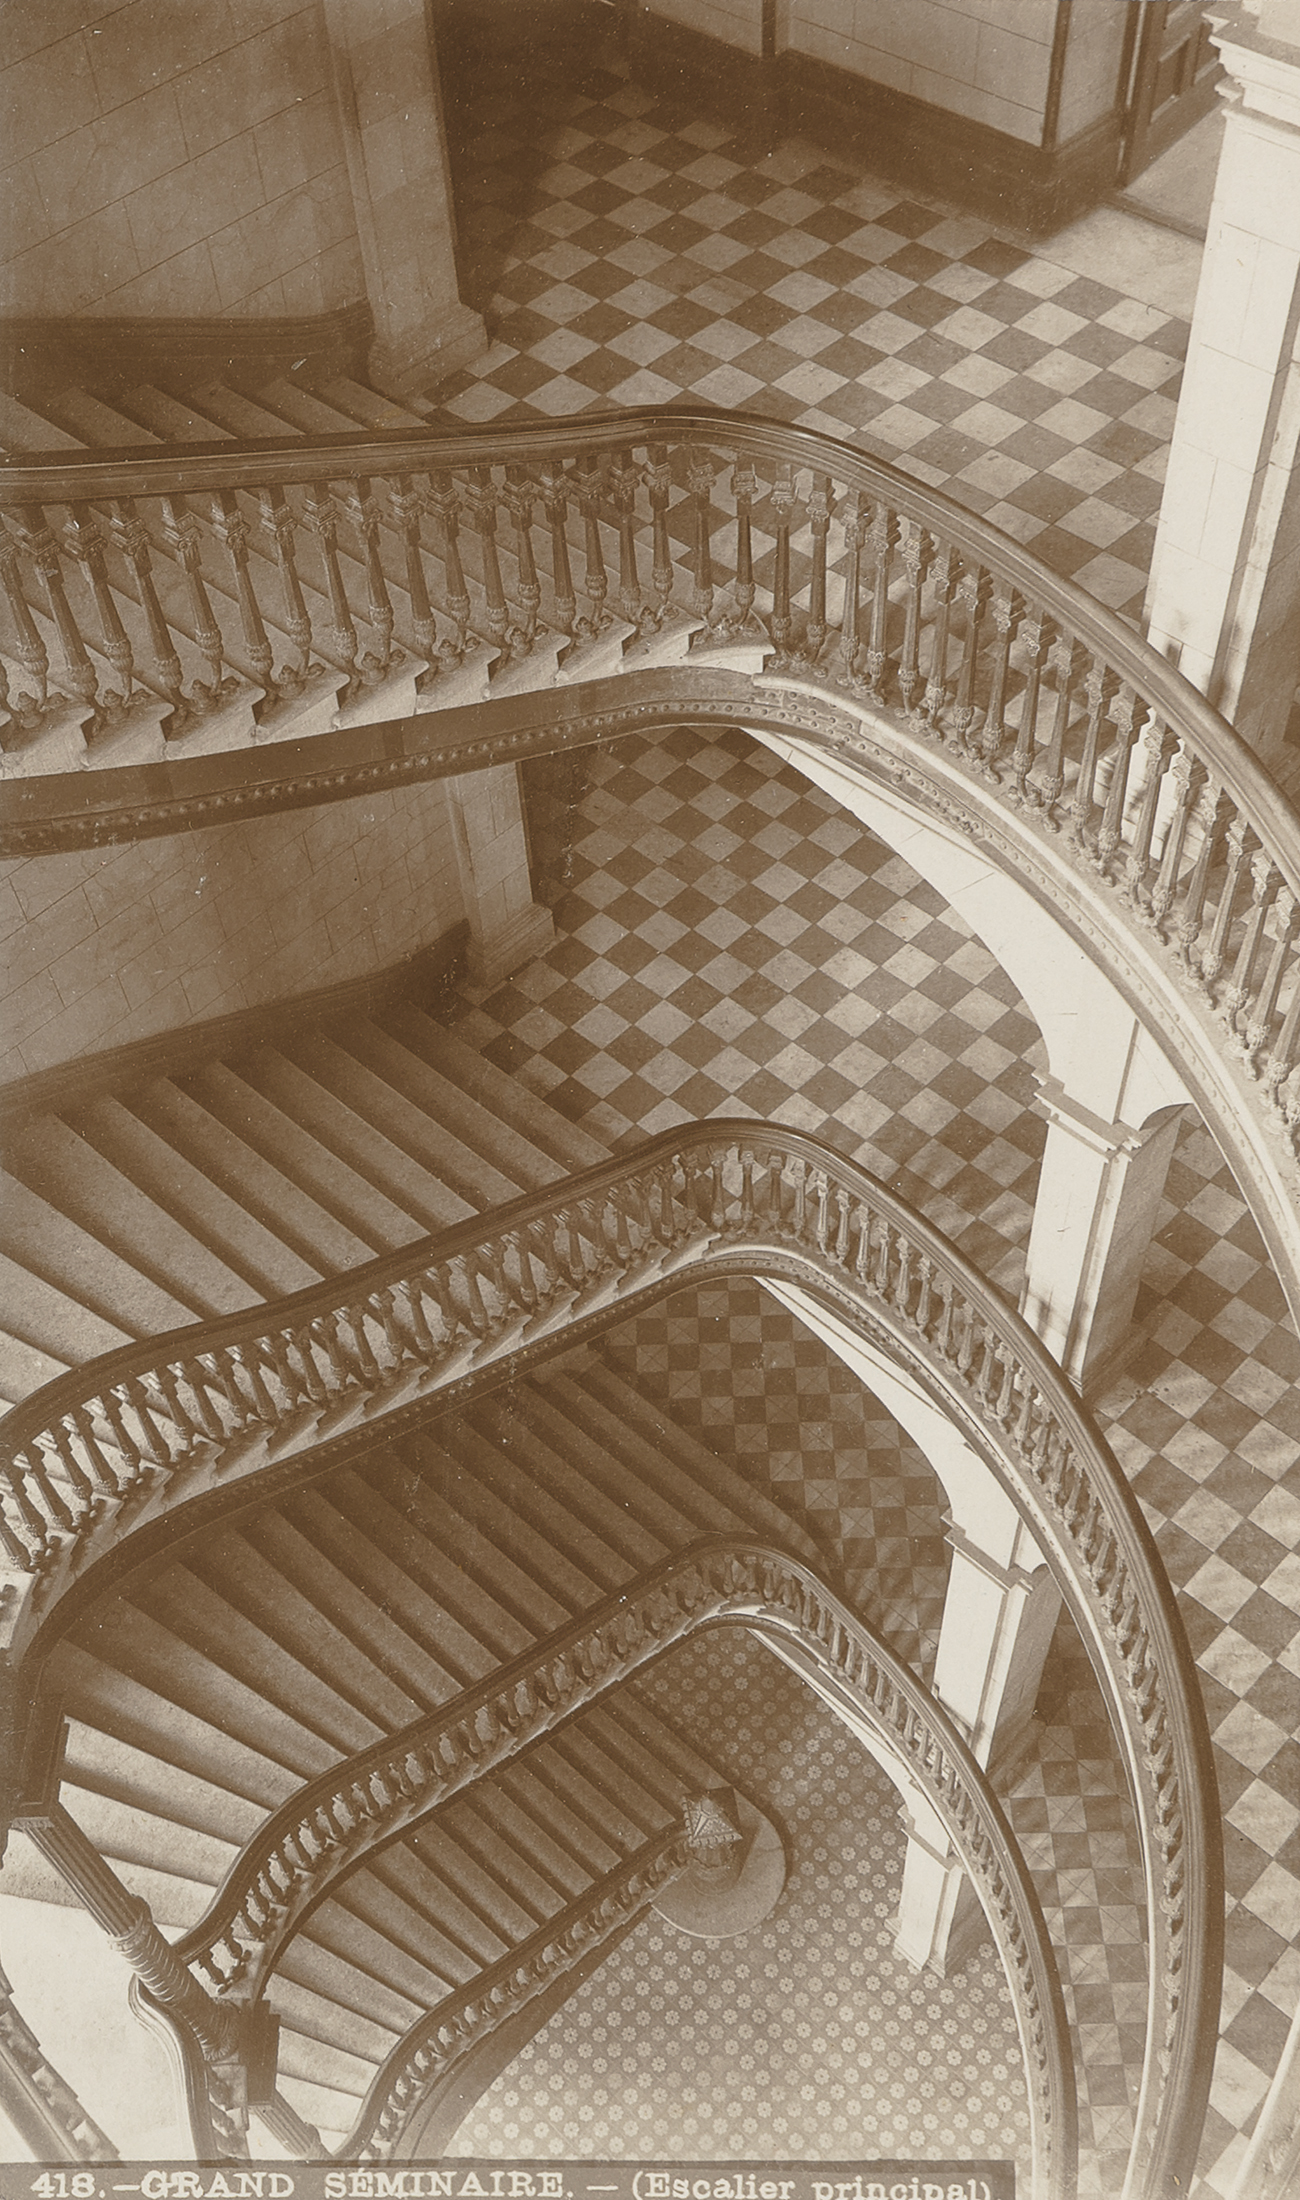 This photograph shows the four flights of a spiral staircase seen from the top. The landings have checkerboard-patterned floors. The structure is supported by stacked white columns seen on the right.